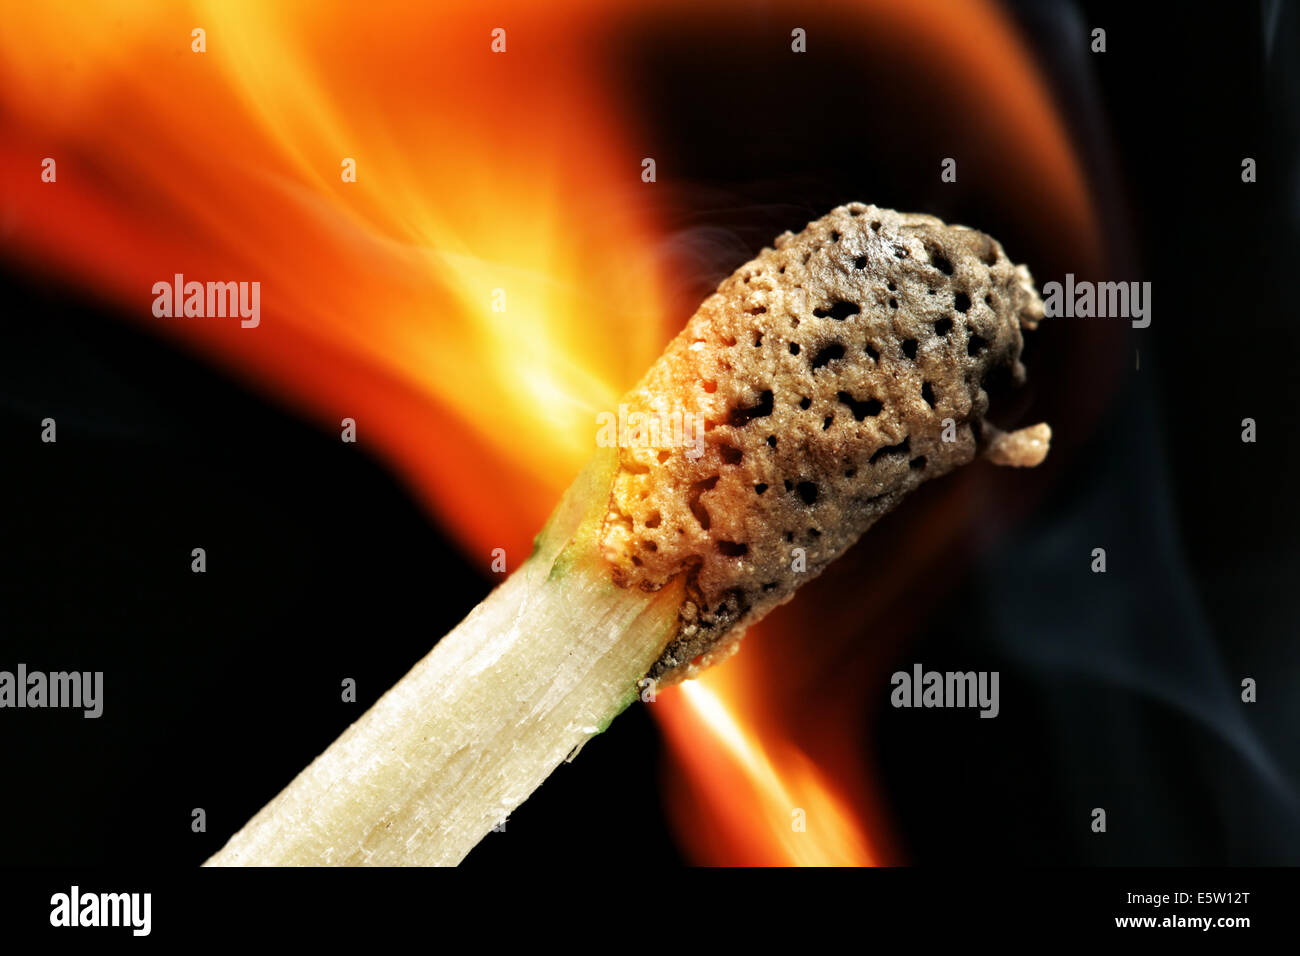 Burning match close-up over black background - Stock Image